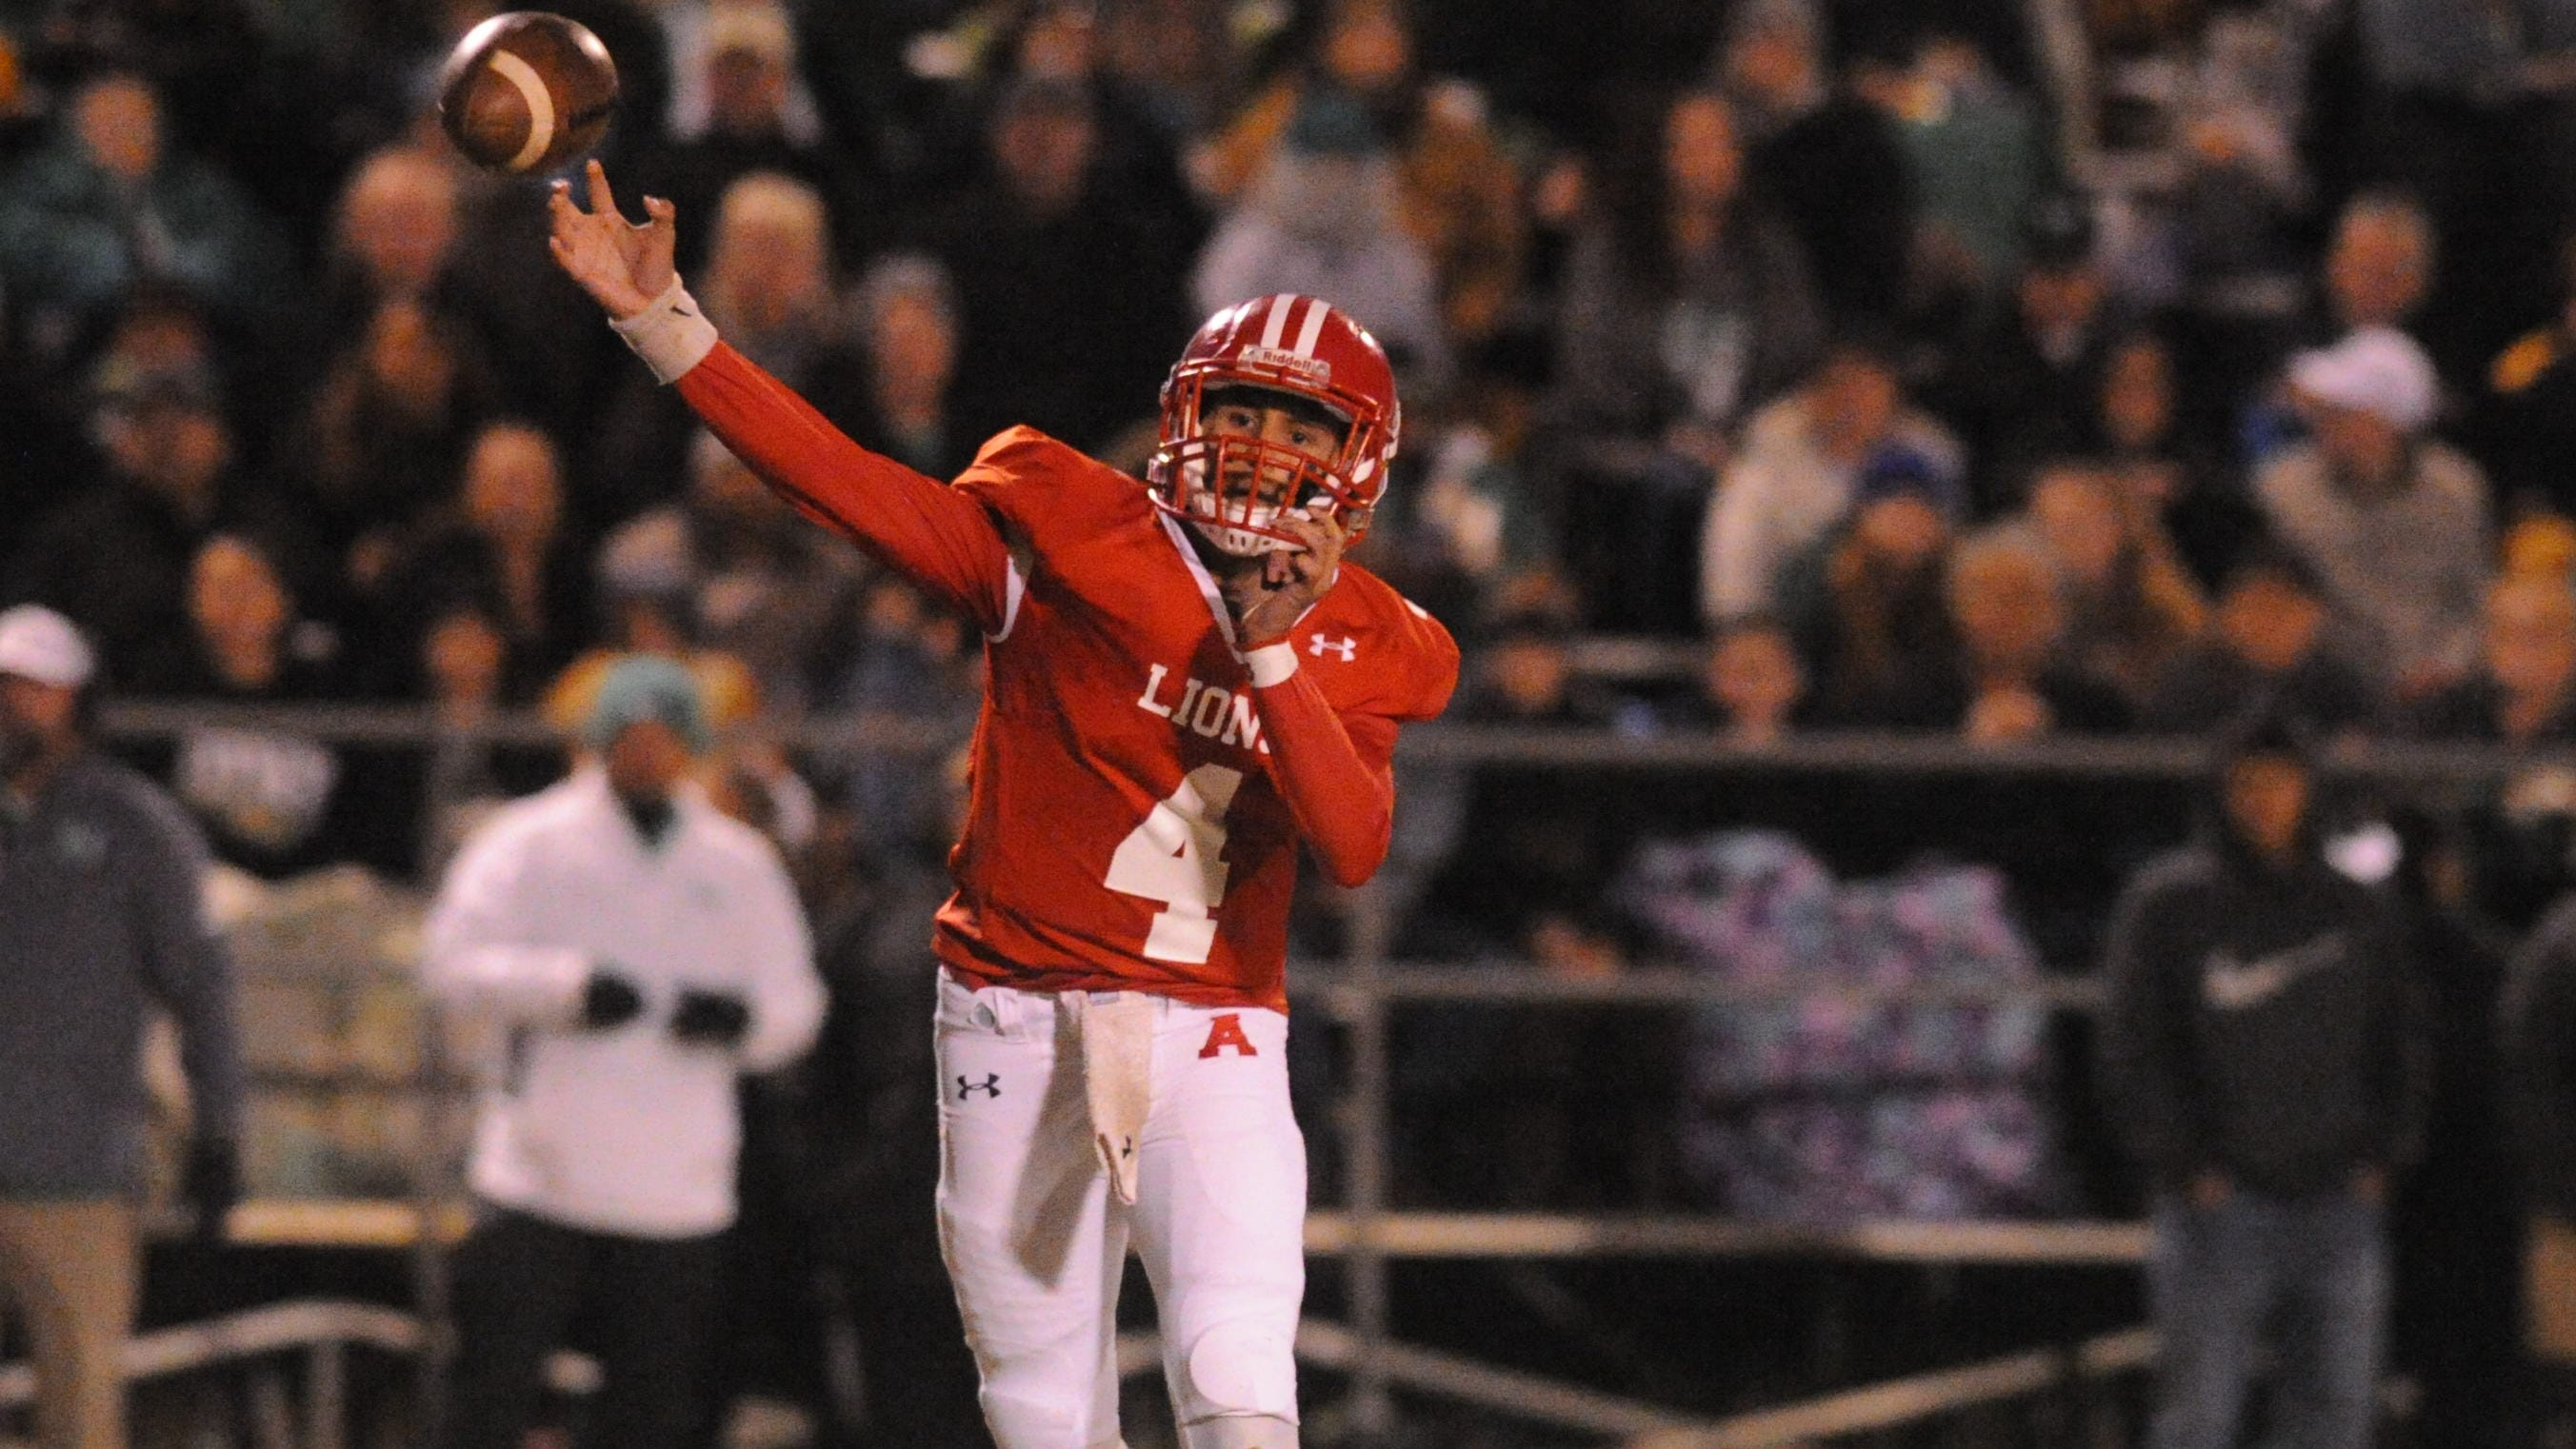 Albany junior quarterback Ben West throws a pass against Hamlin on Nov. 9, 2018, at Robert Nail Memorial Stadium in Albany. The Lions won the game 34-27 to earn the district title.